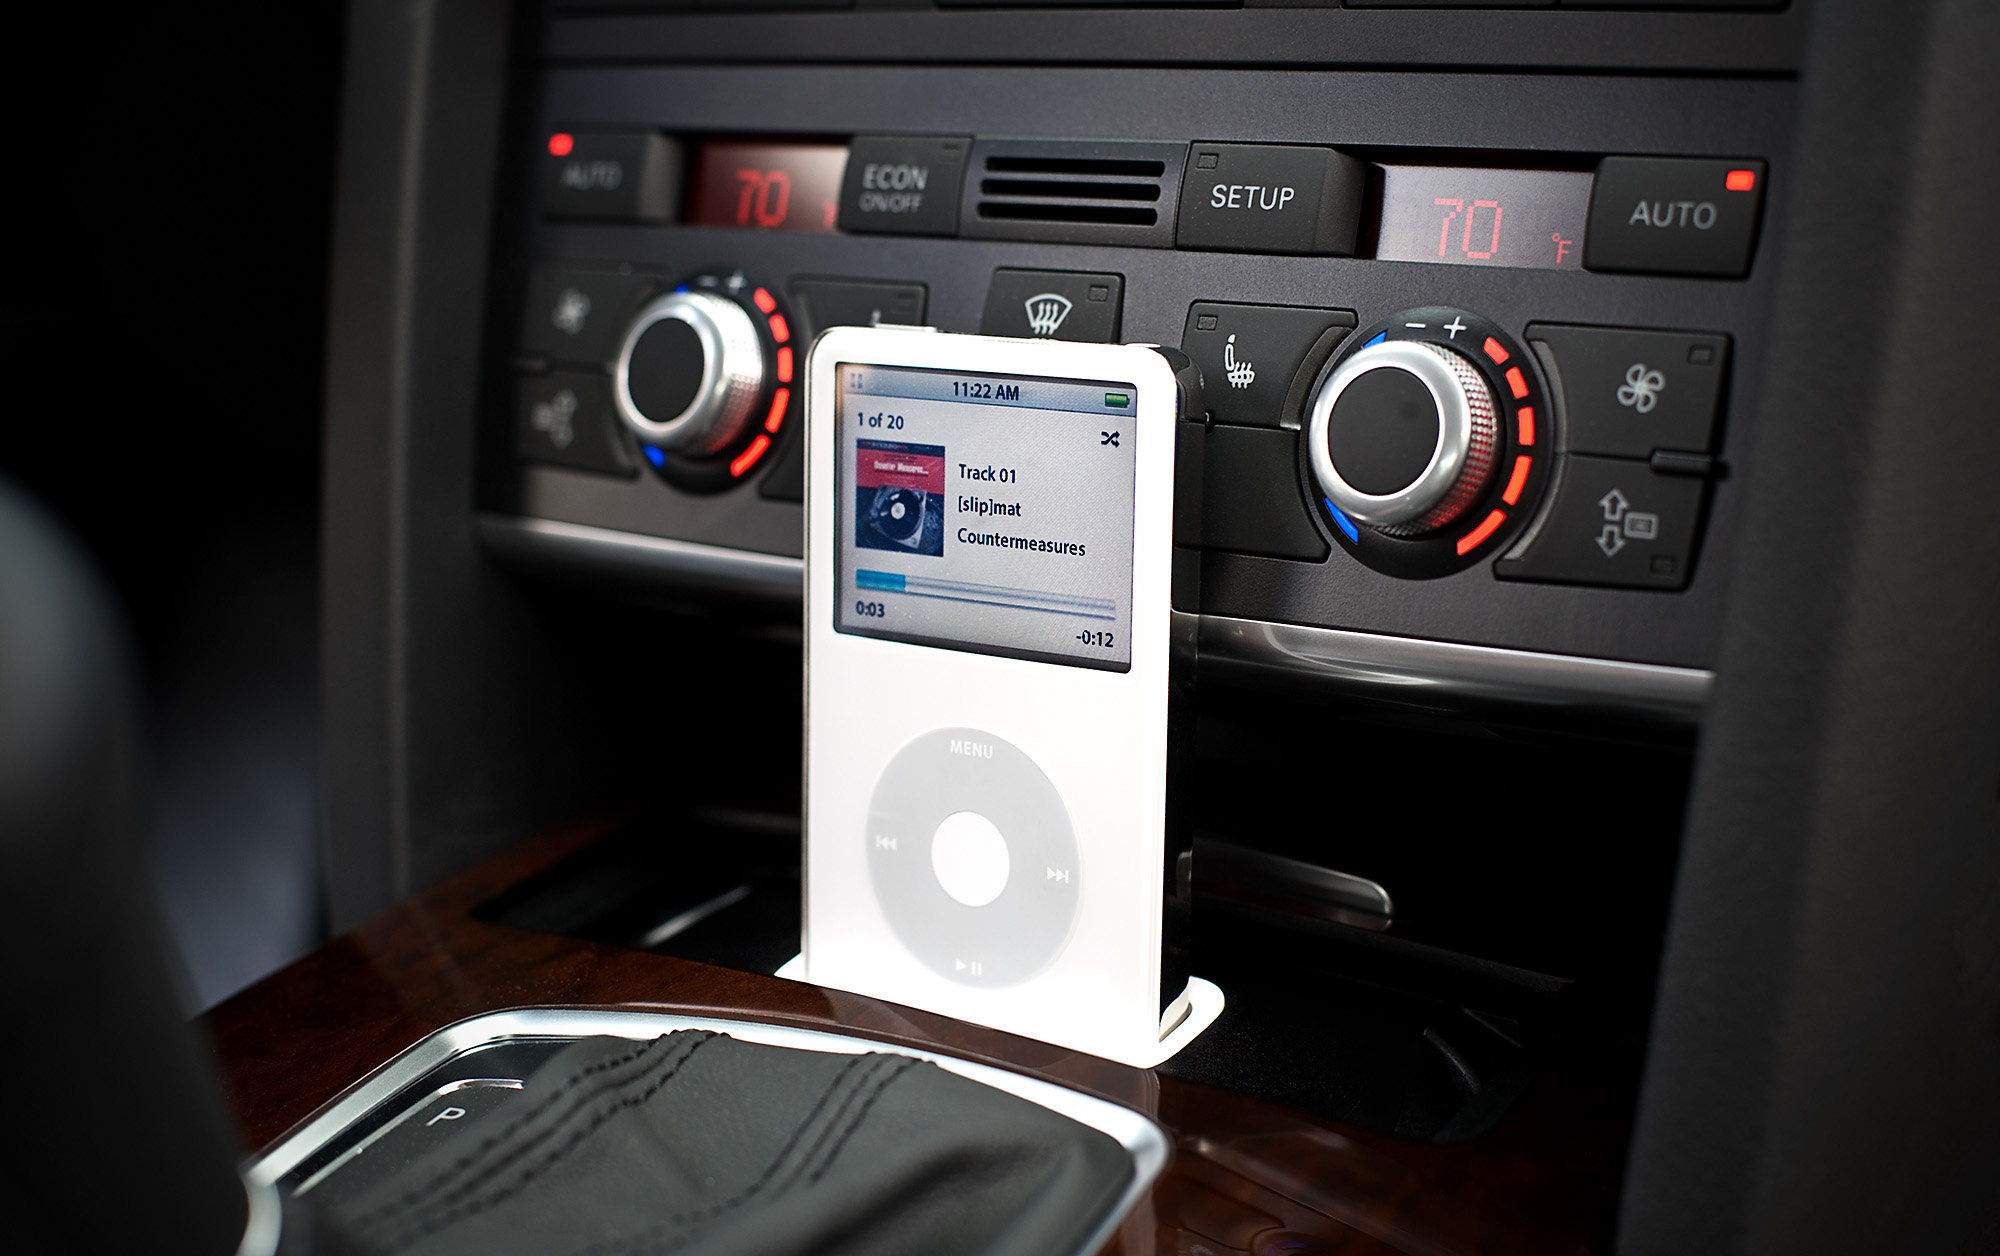 car iphone dock for audi now updated with. Black Bedroom Furniture Sets. Home Design Ideas